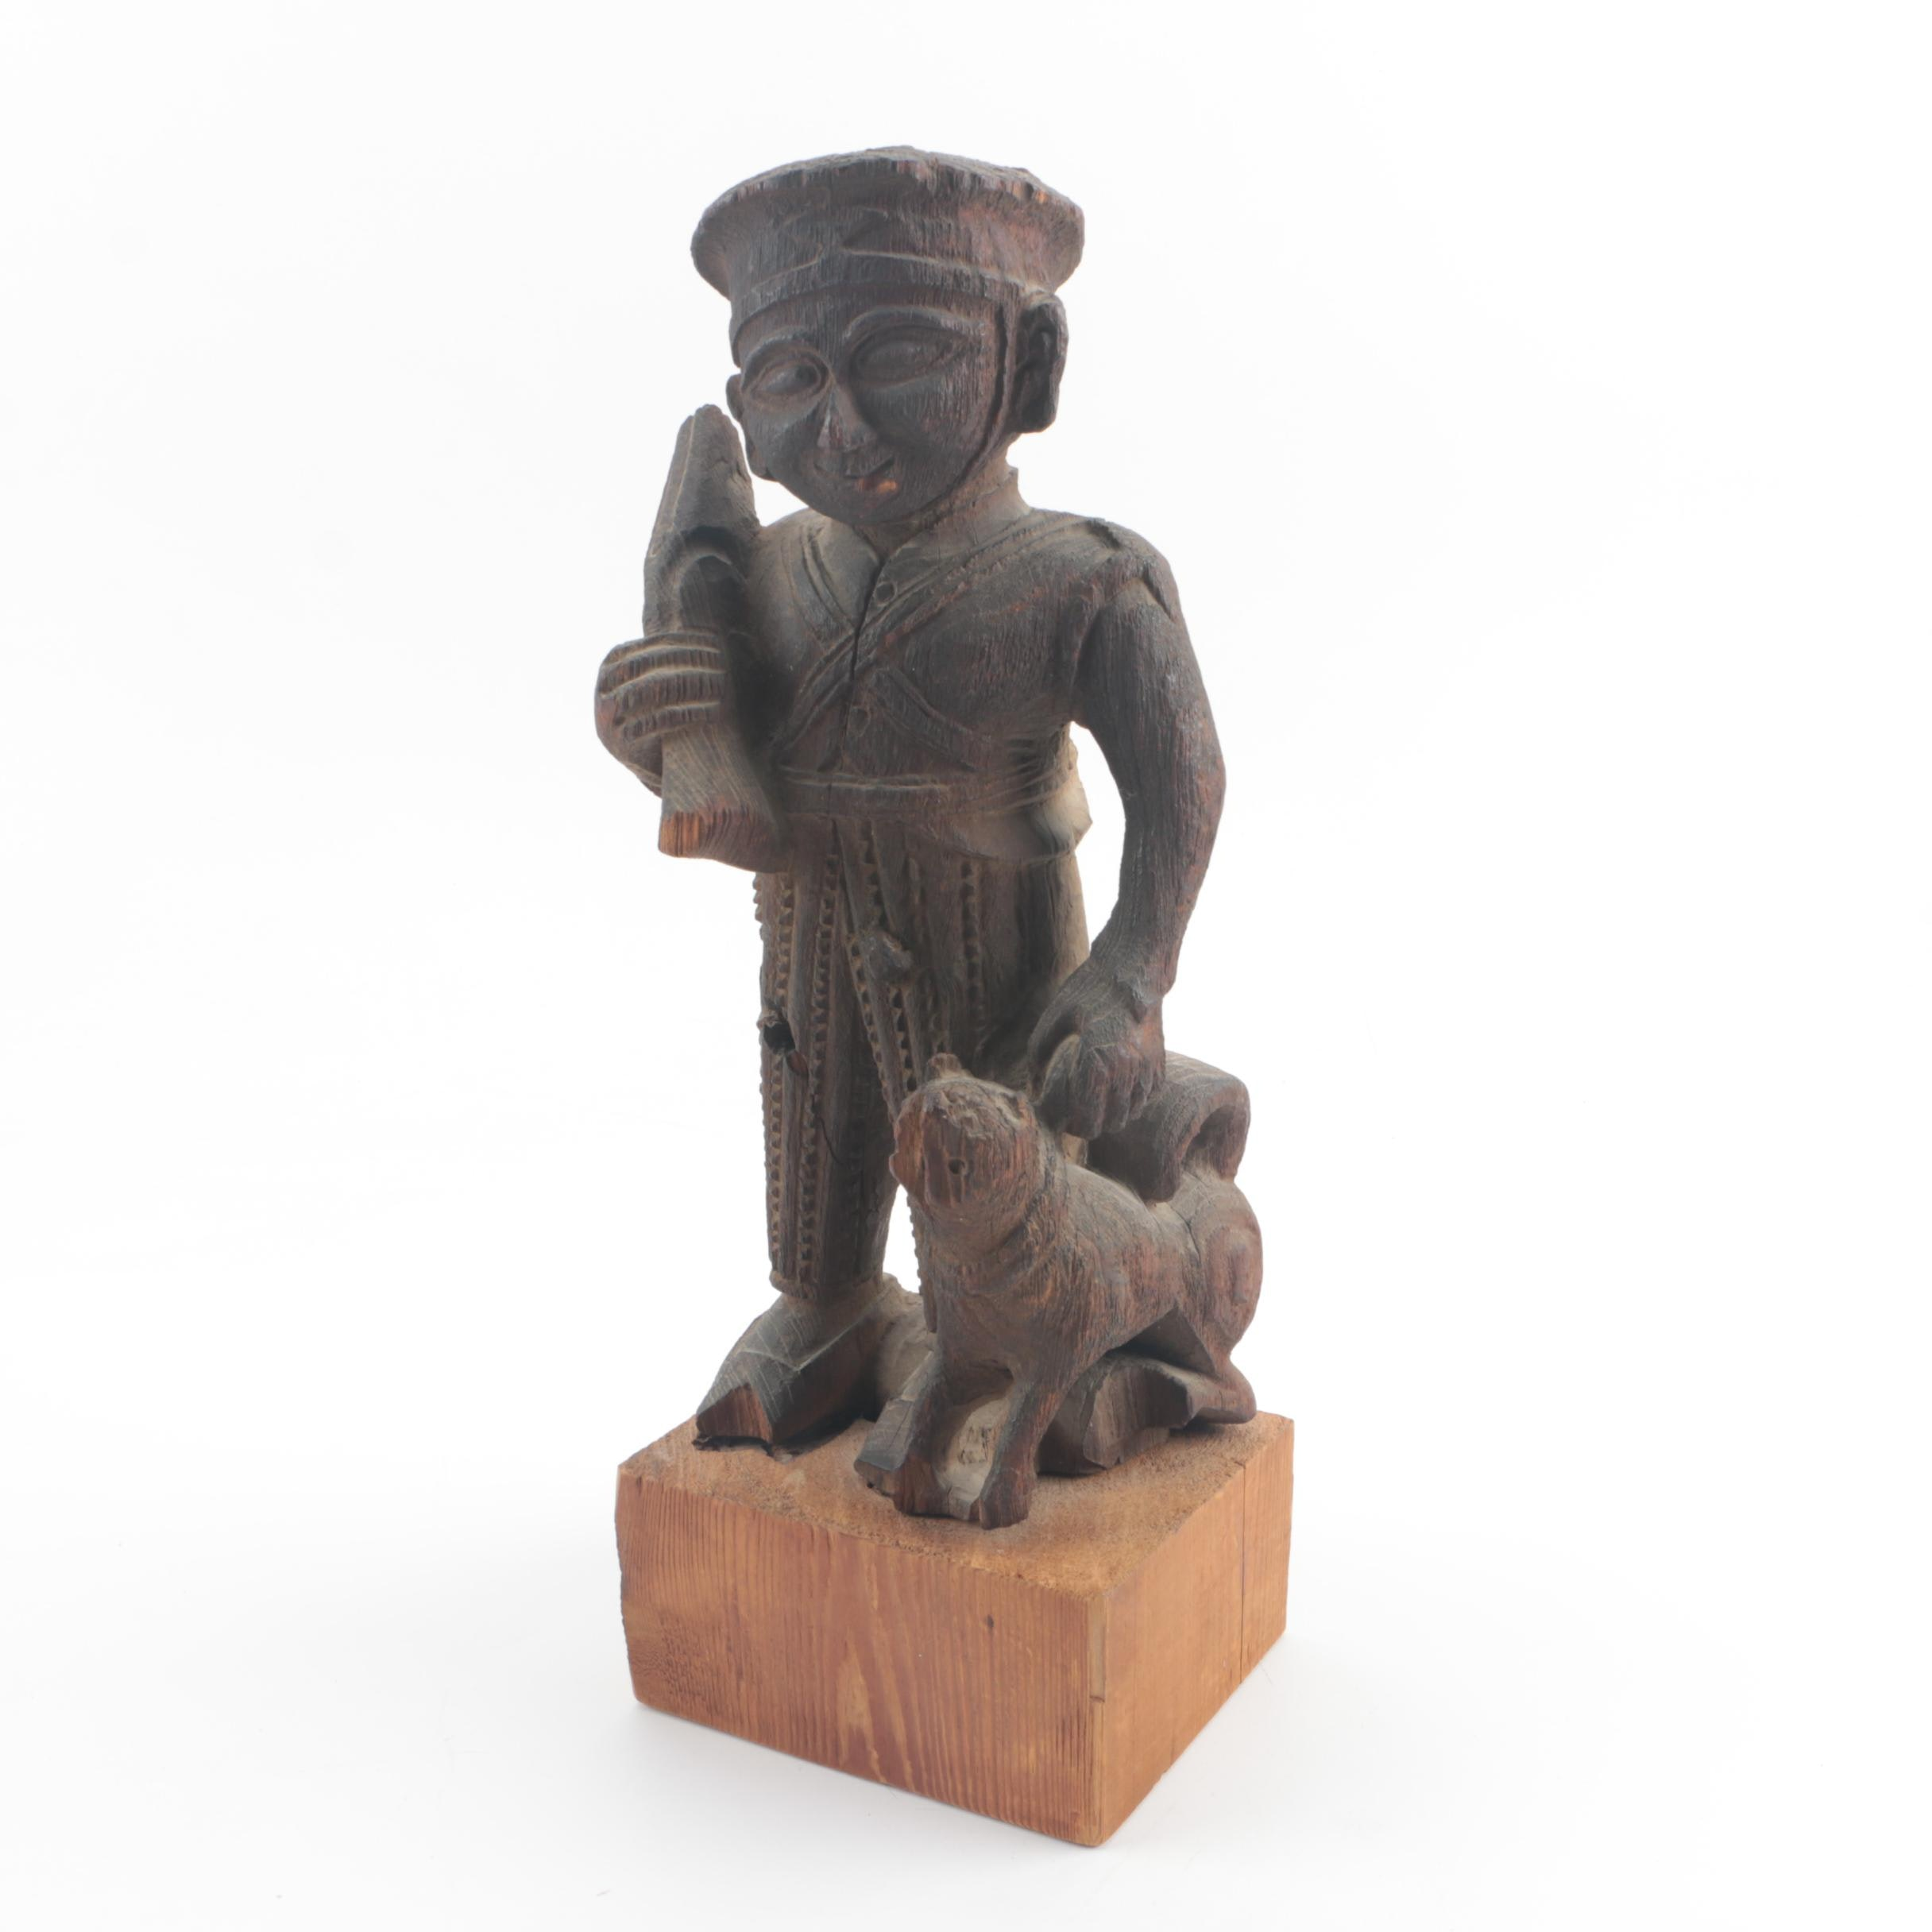 Wood Carving of Soldier and Dog